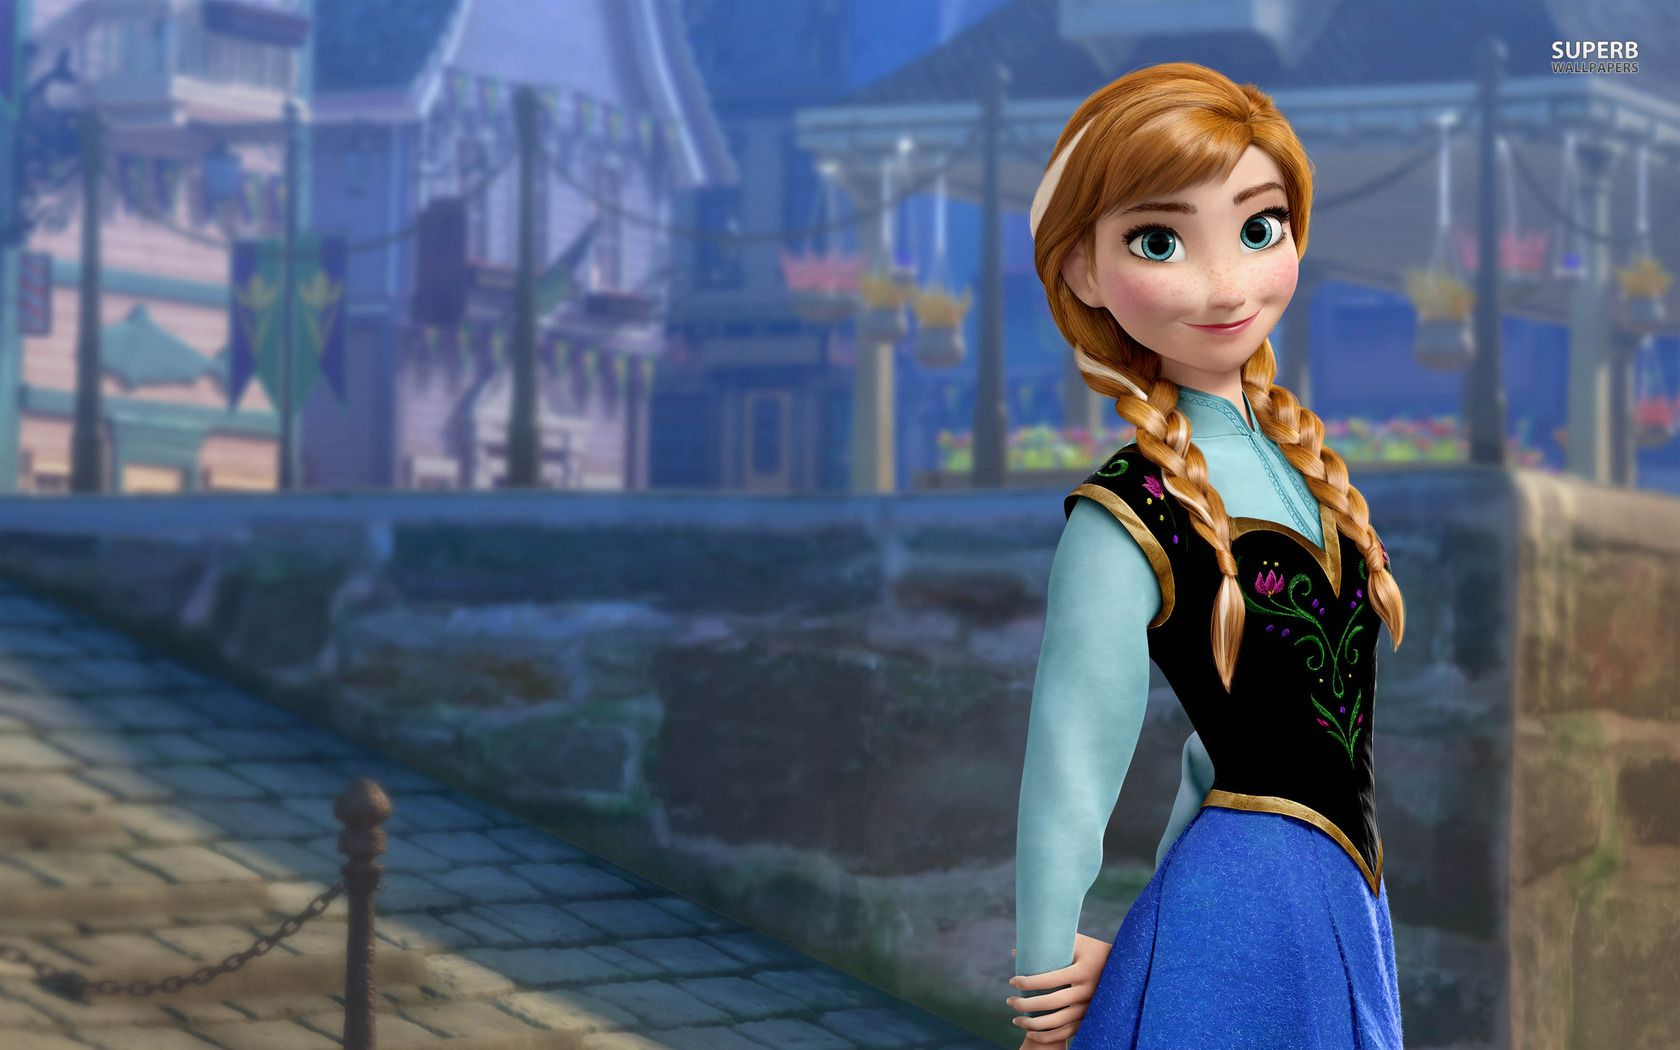 1680x1050 p.43, Elsa And Anna Wallpapers, Elsa And Anna Widescreen Photos